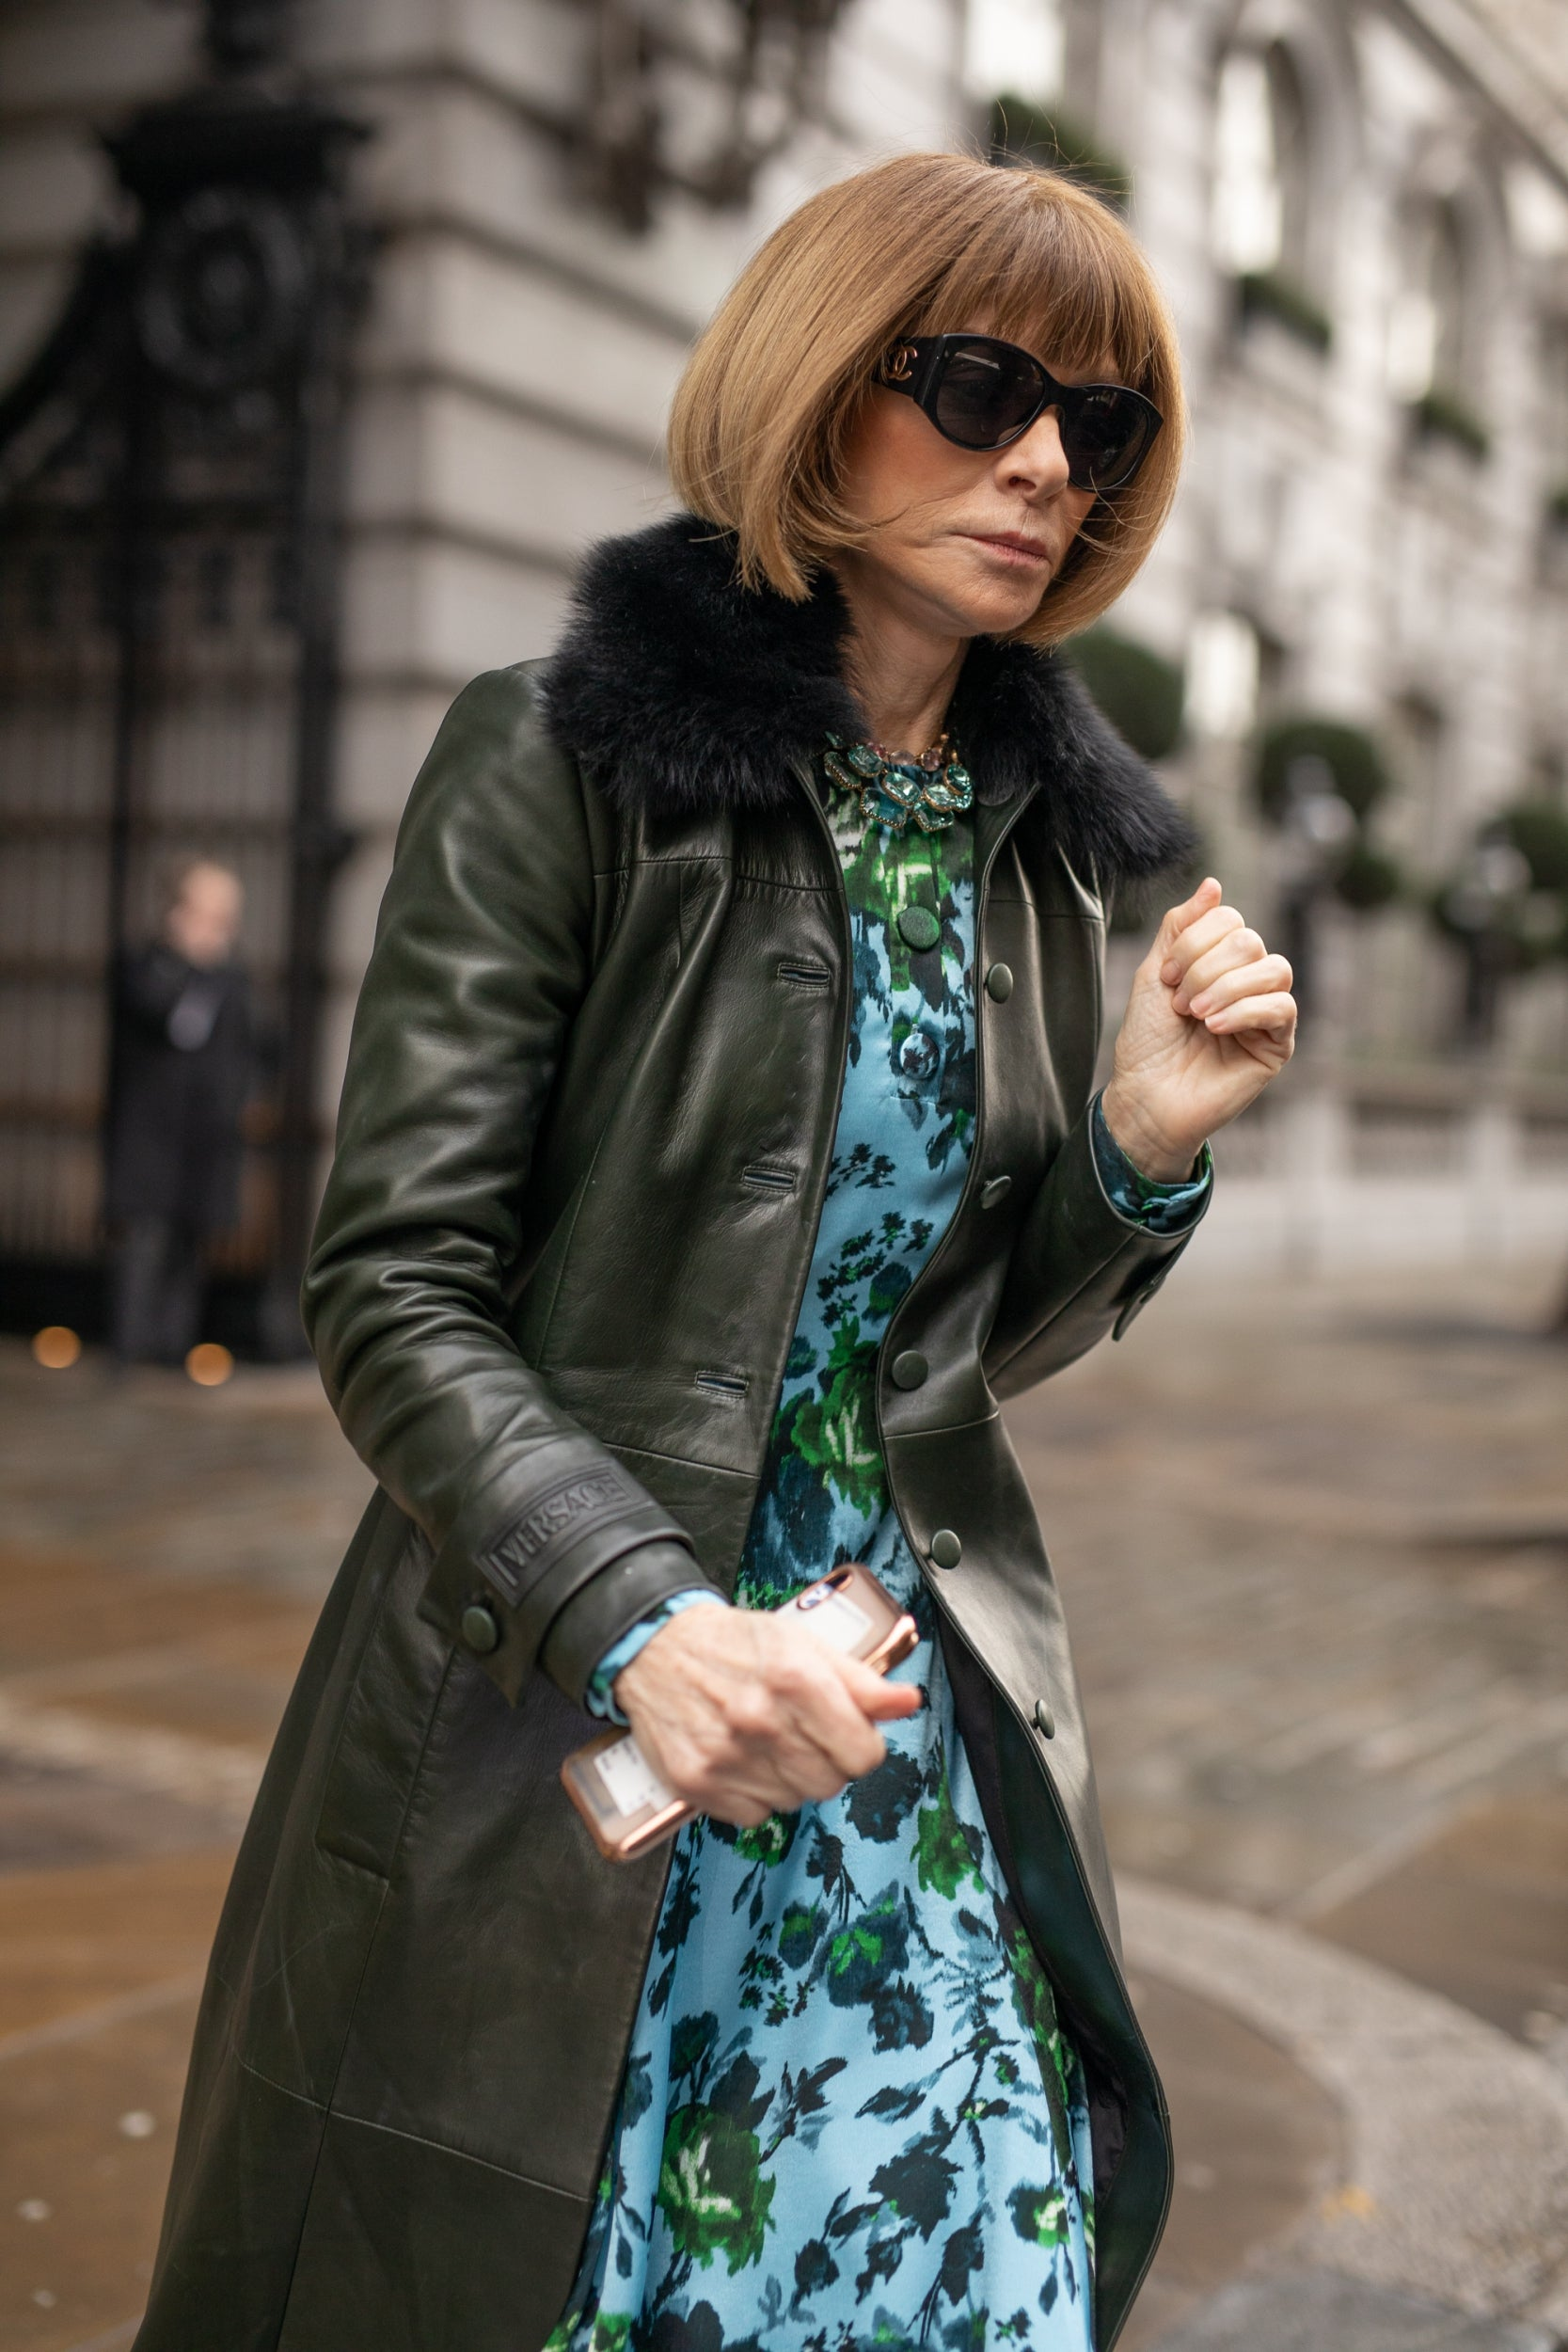 b9921e9c1 Milan Fashion Week: What is it, who goes and what are the best shows ...